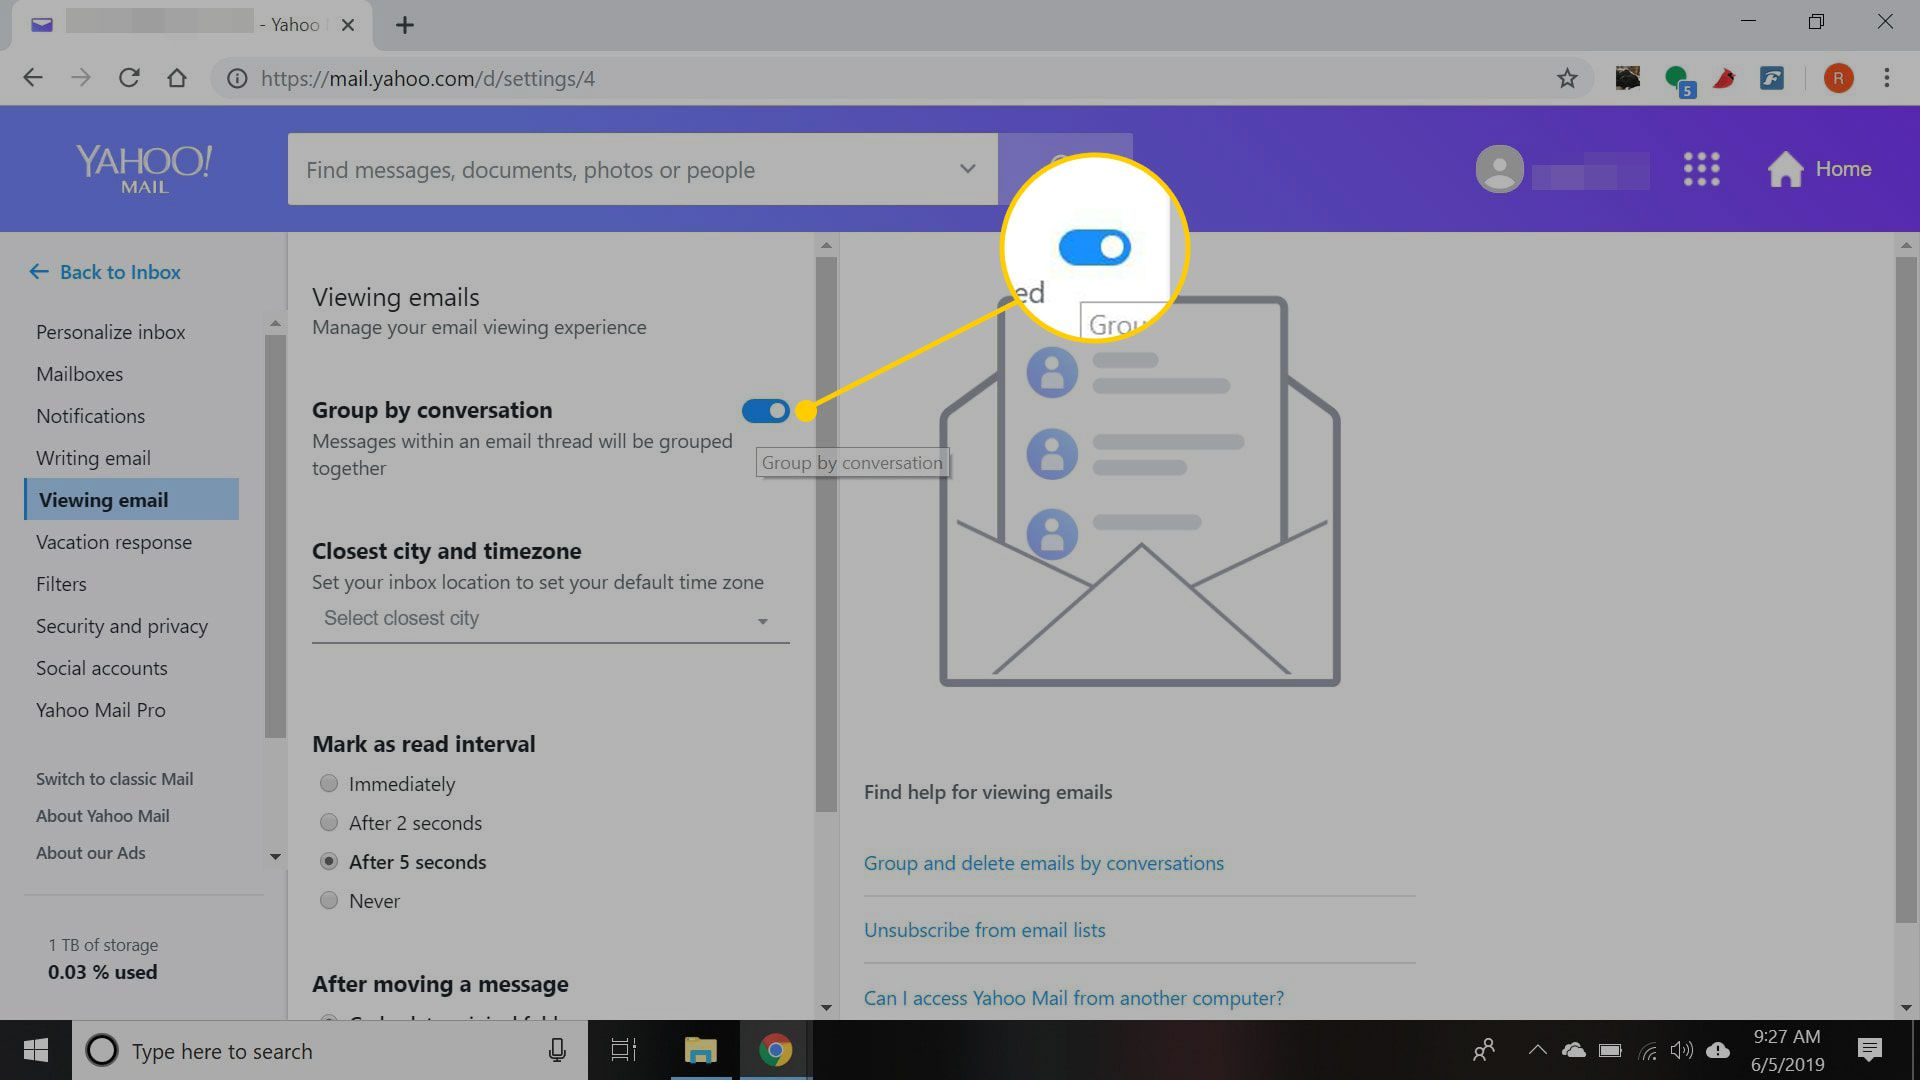 Yahoo Mail viewing email settings with Group by conversation highlighted